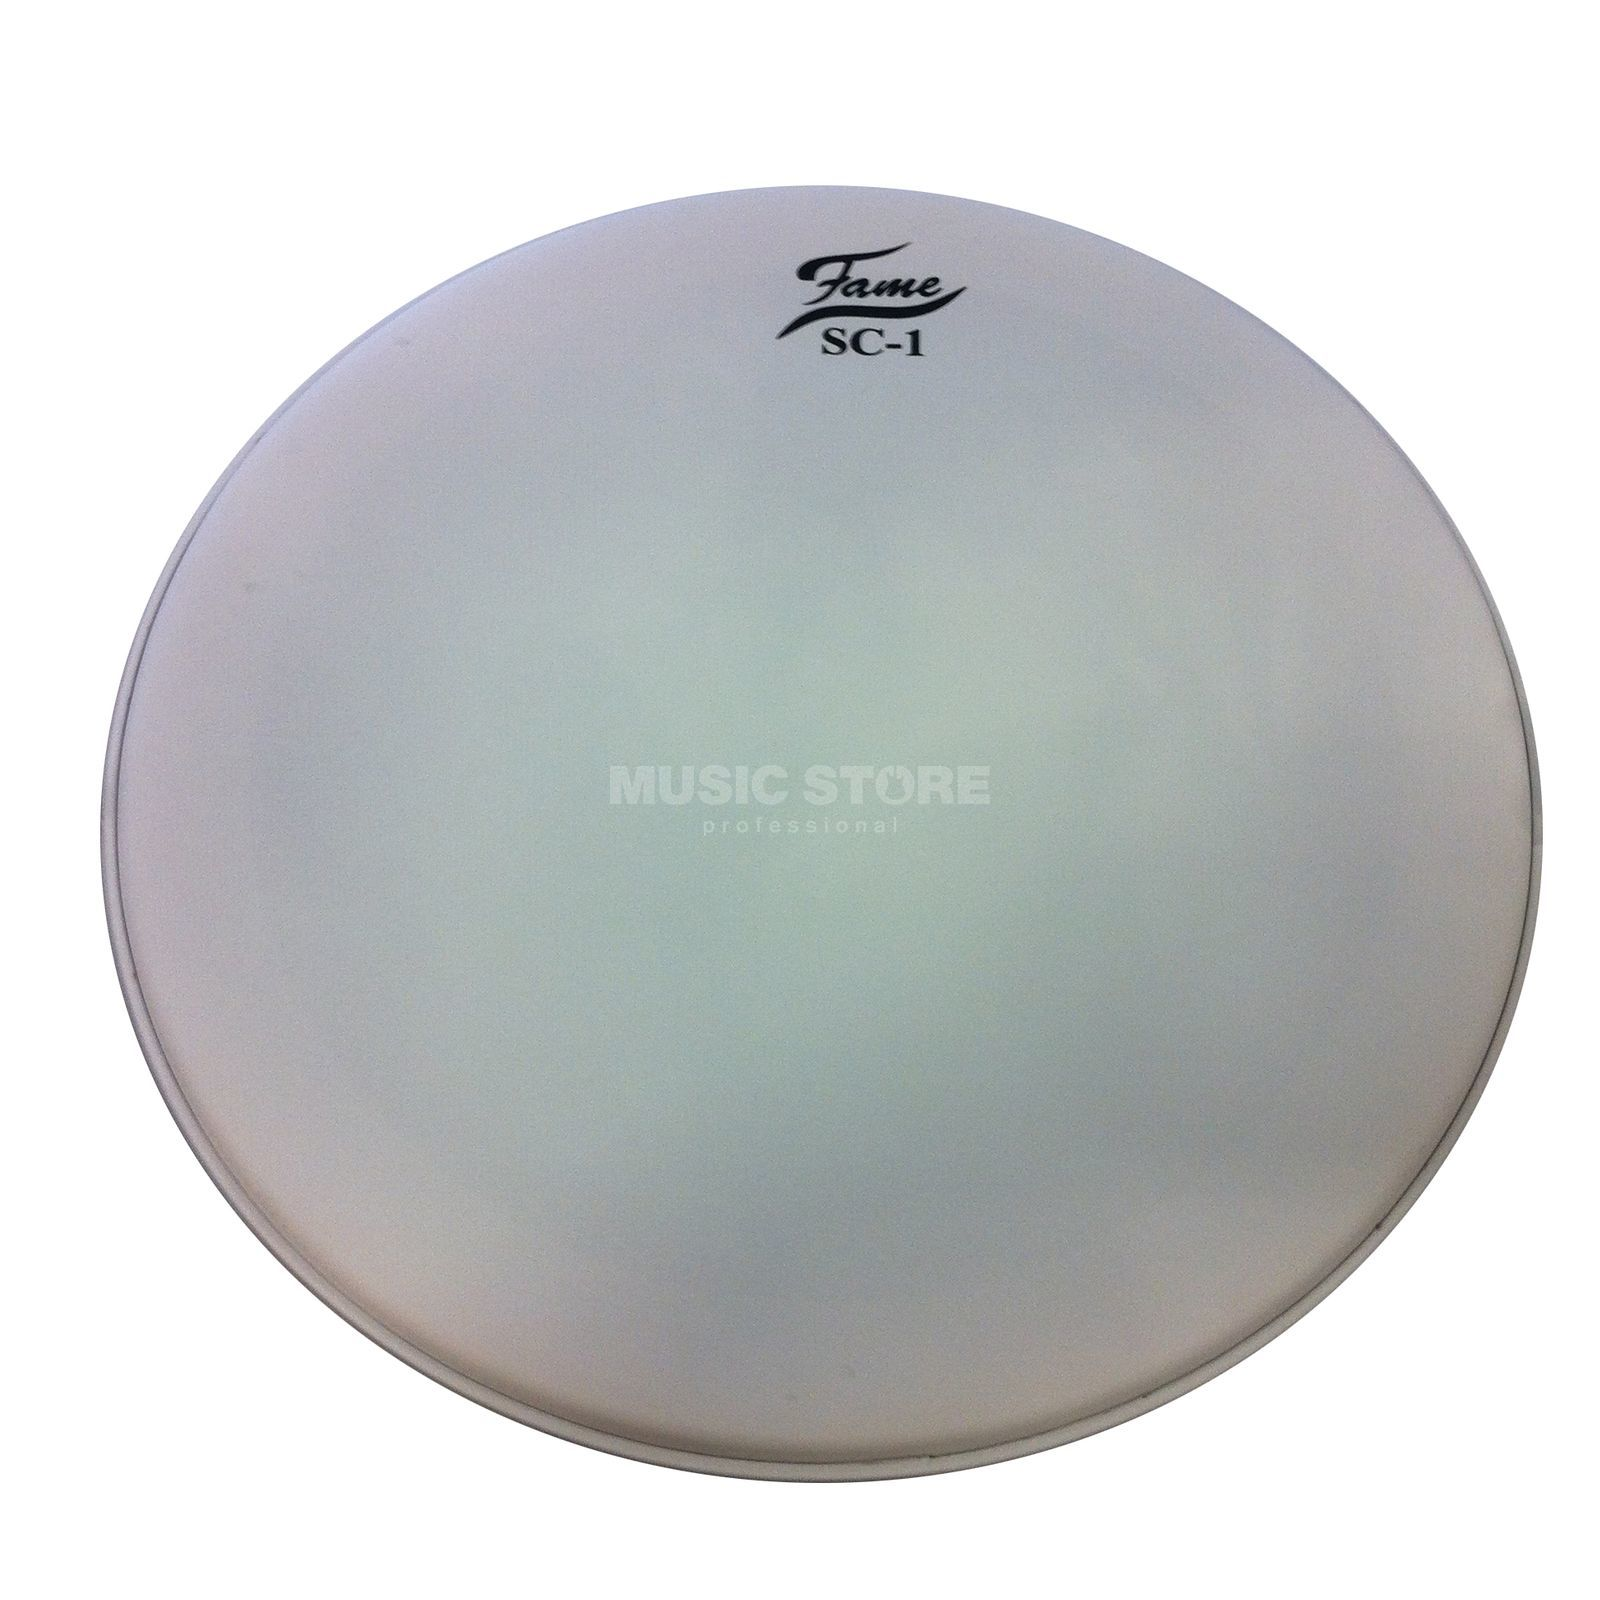 "Fame Bass Drum Head SC1 22"", Coated White, Sound Control, w/Logo Produktbillede"